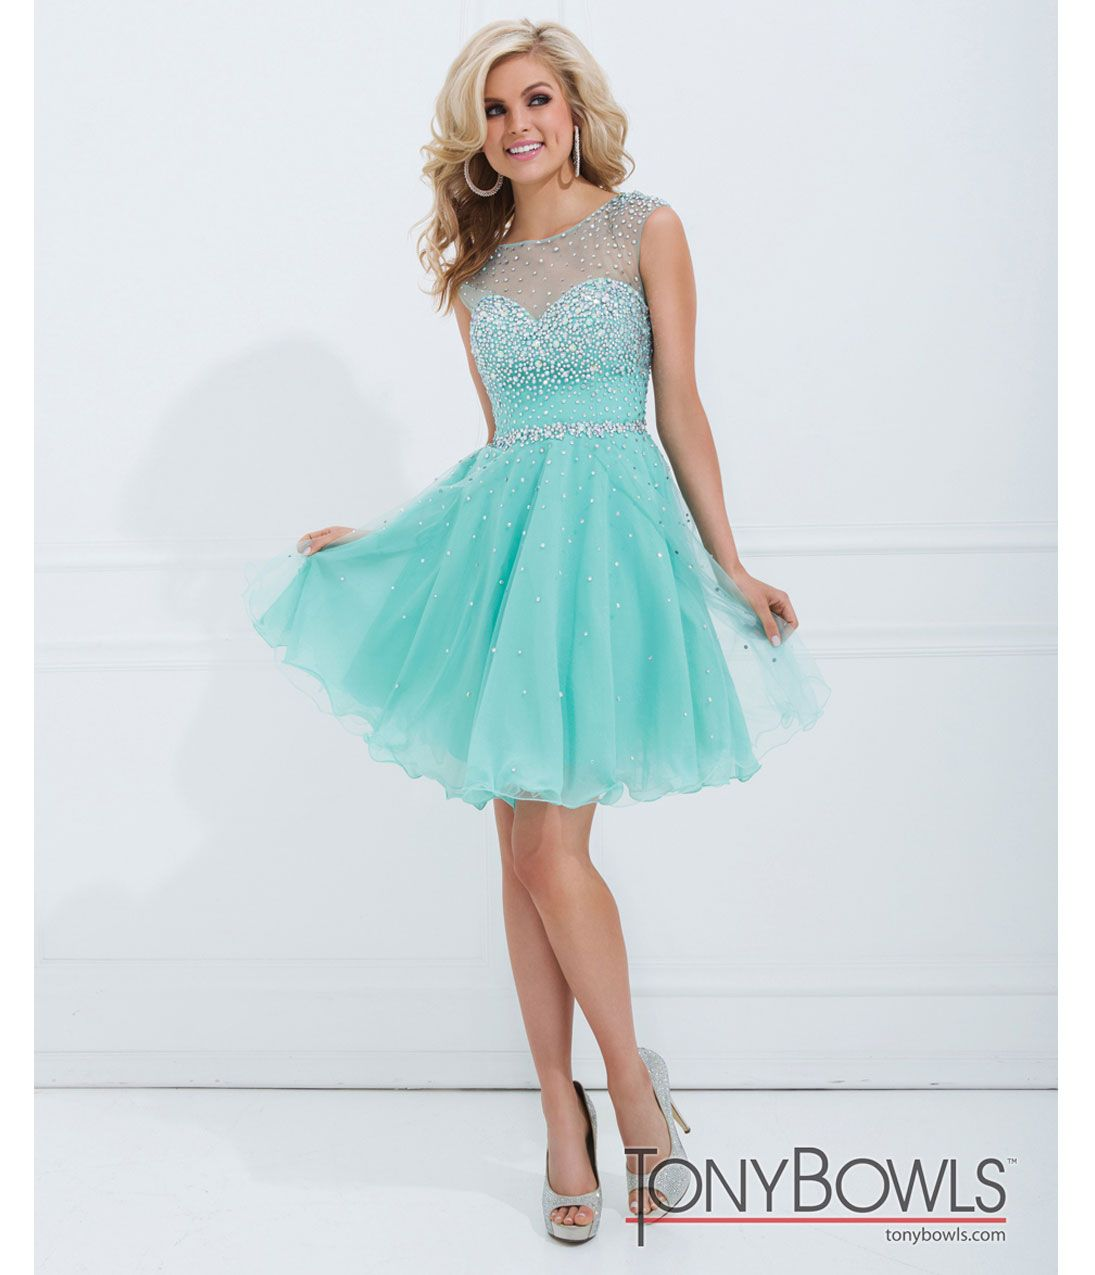 Unique Vintage | Tony bowls, Short prom dresses and Short prom